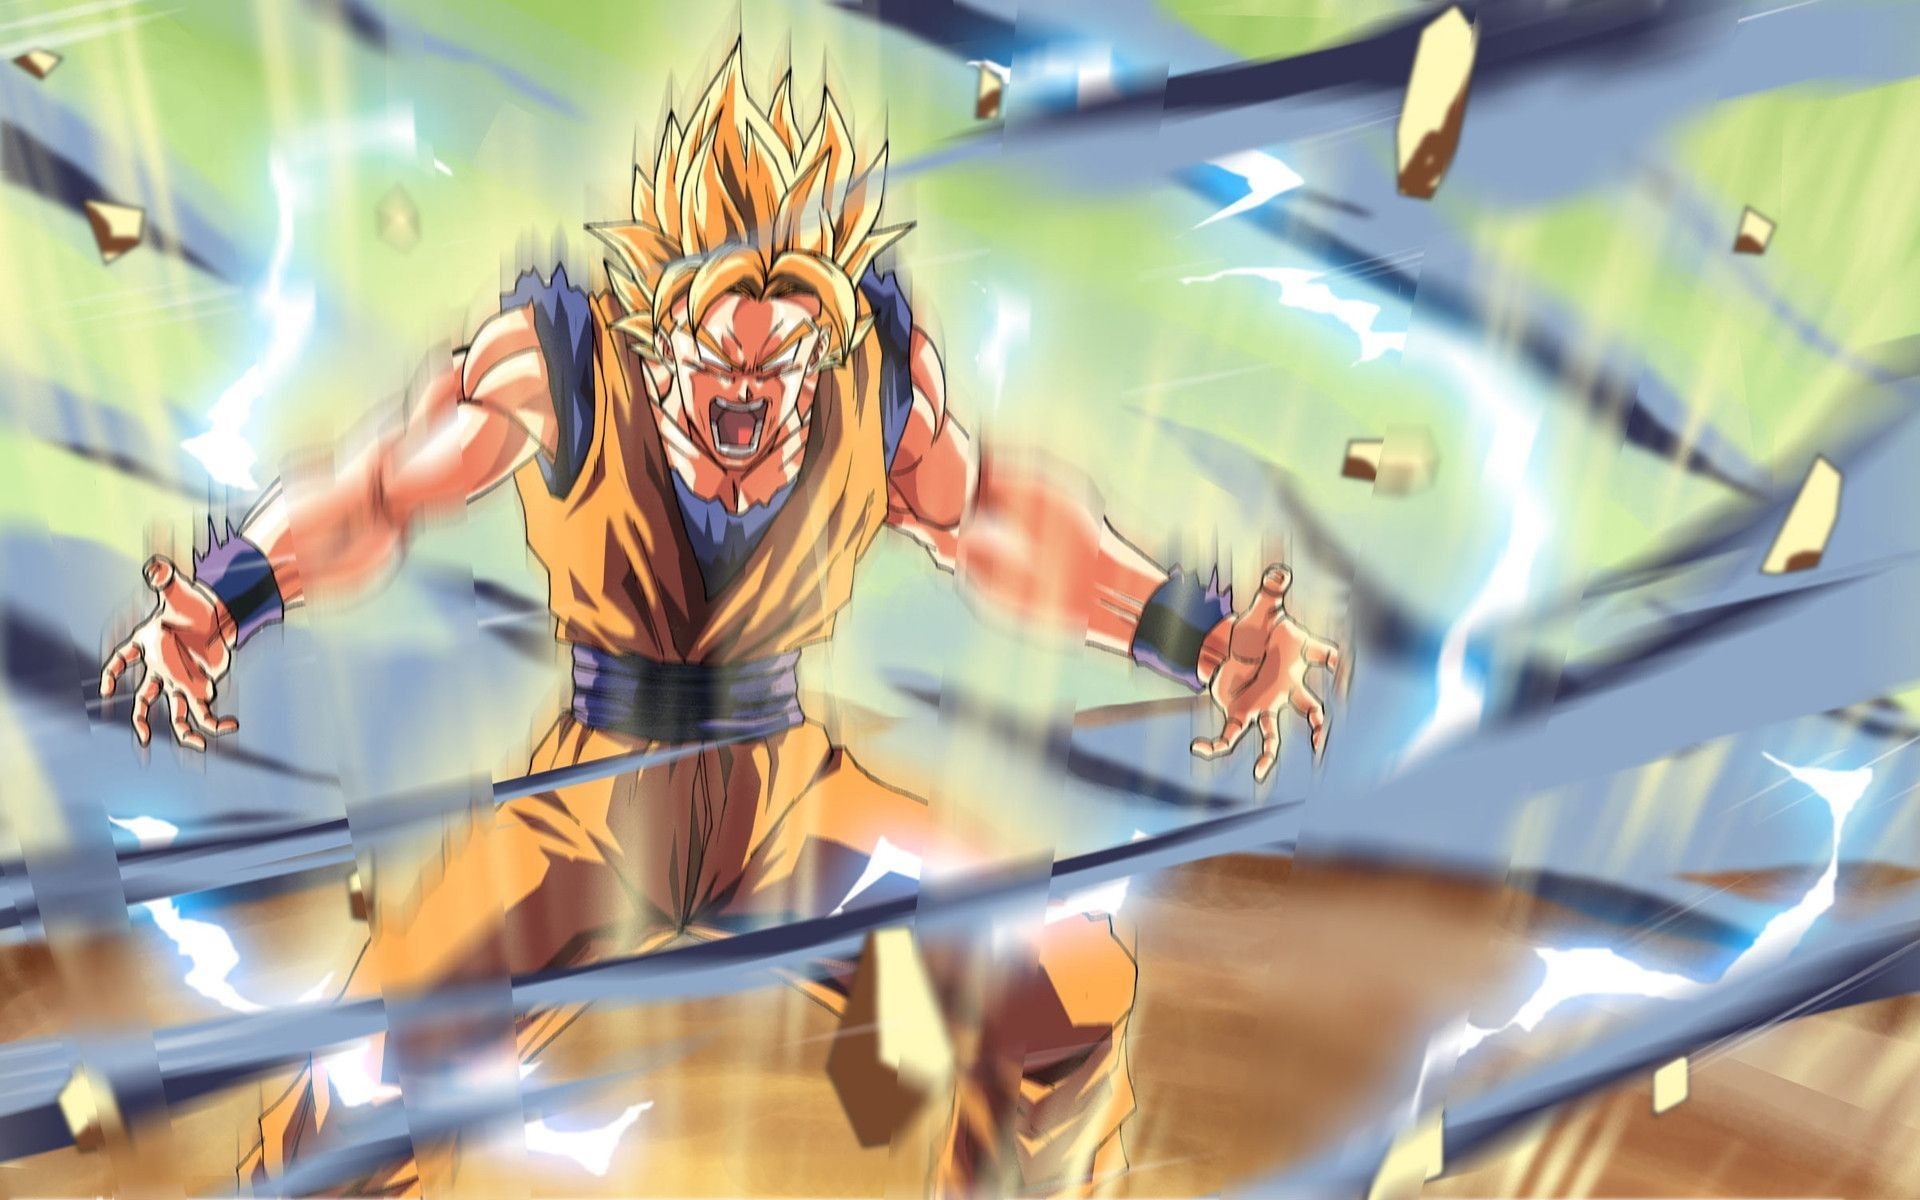 Best Wallpaper High Quality Dbz - 581352  You Should Have_487795.jpg